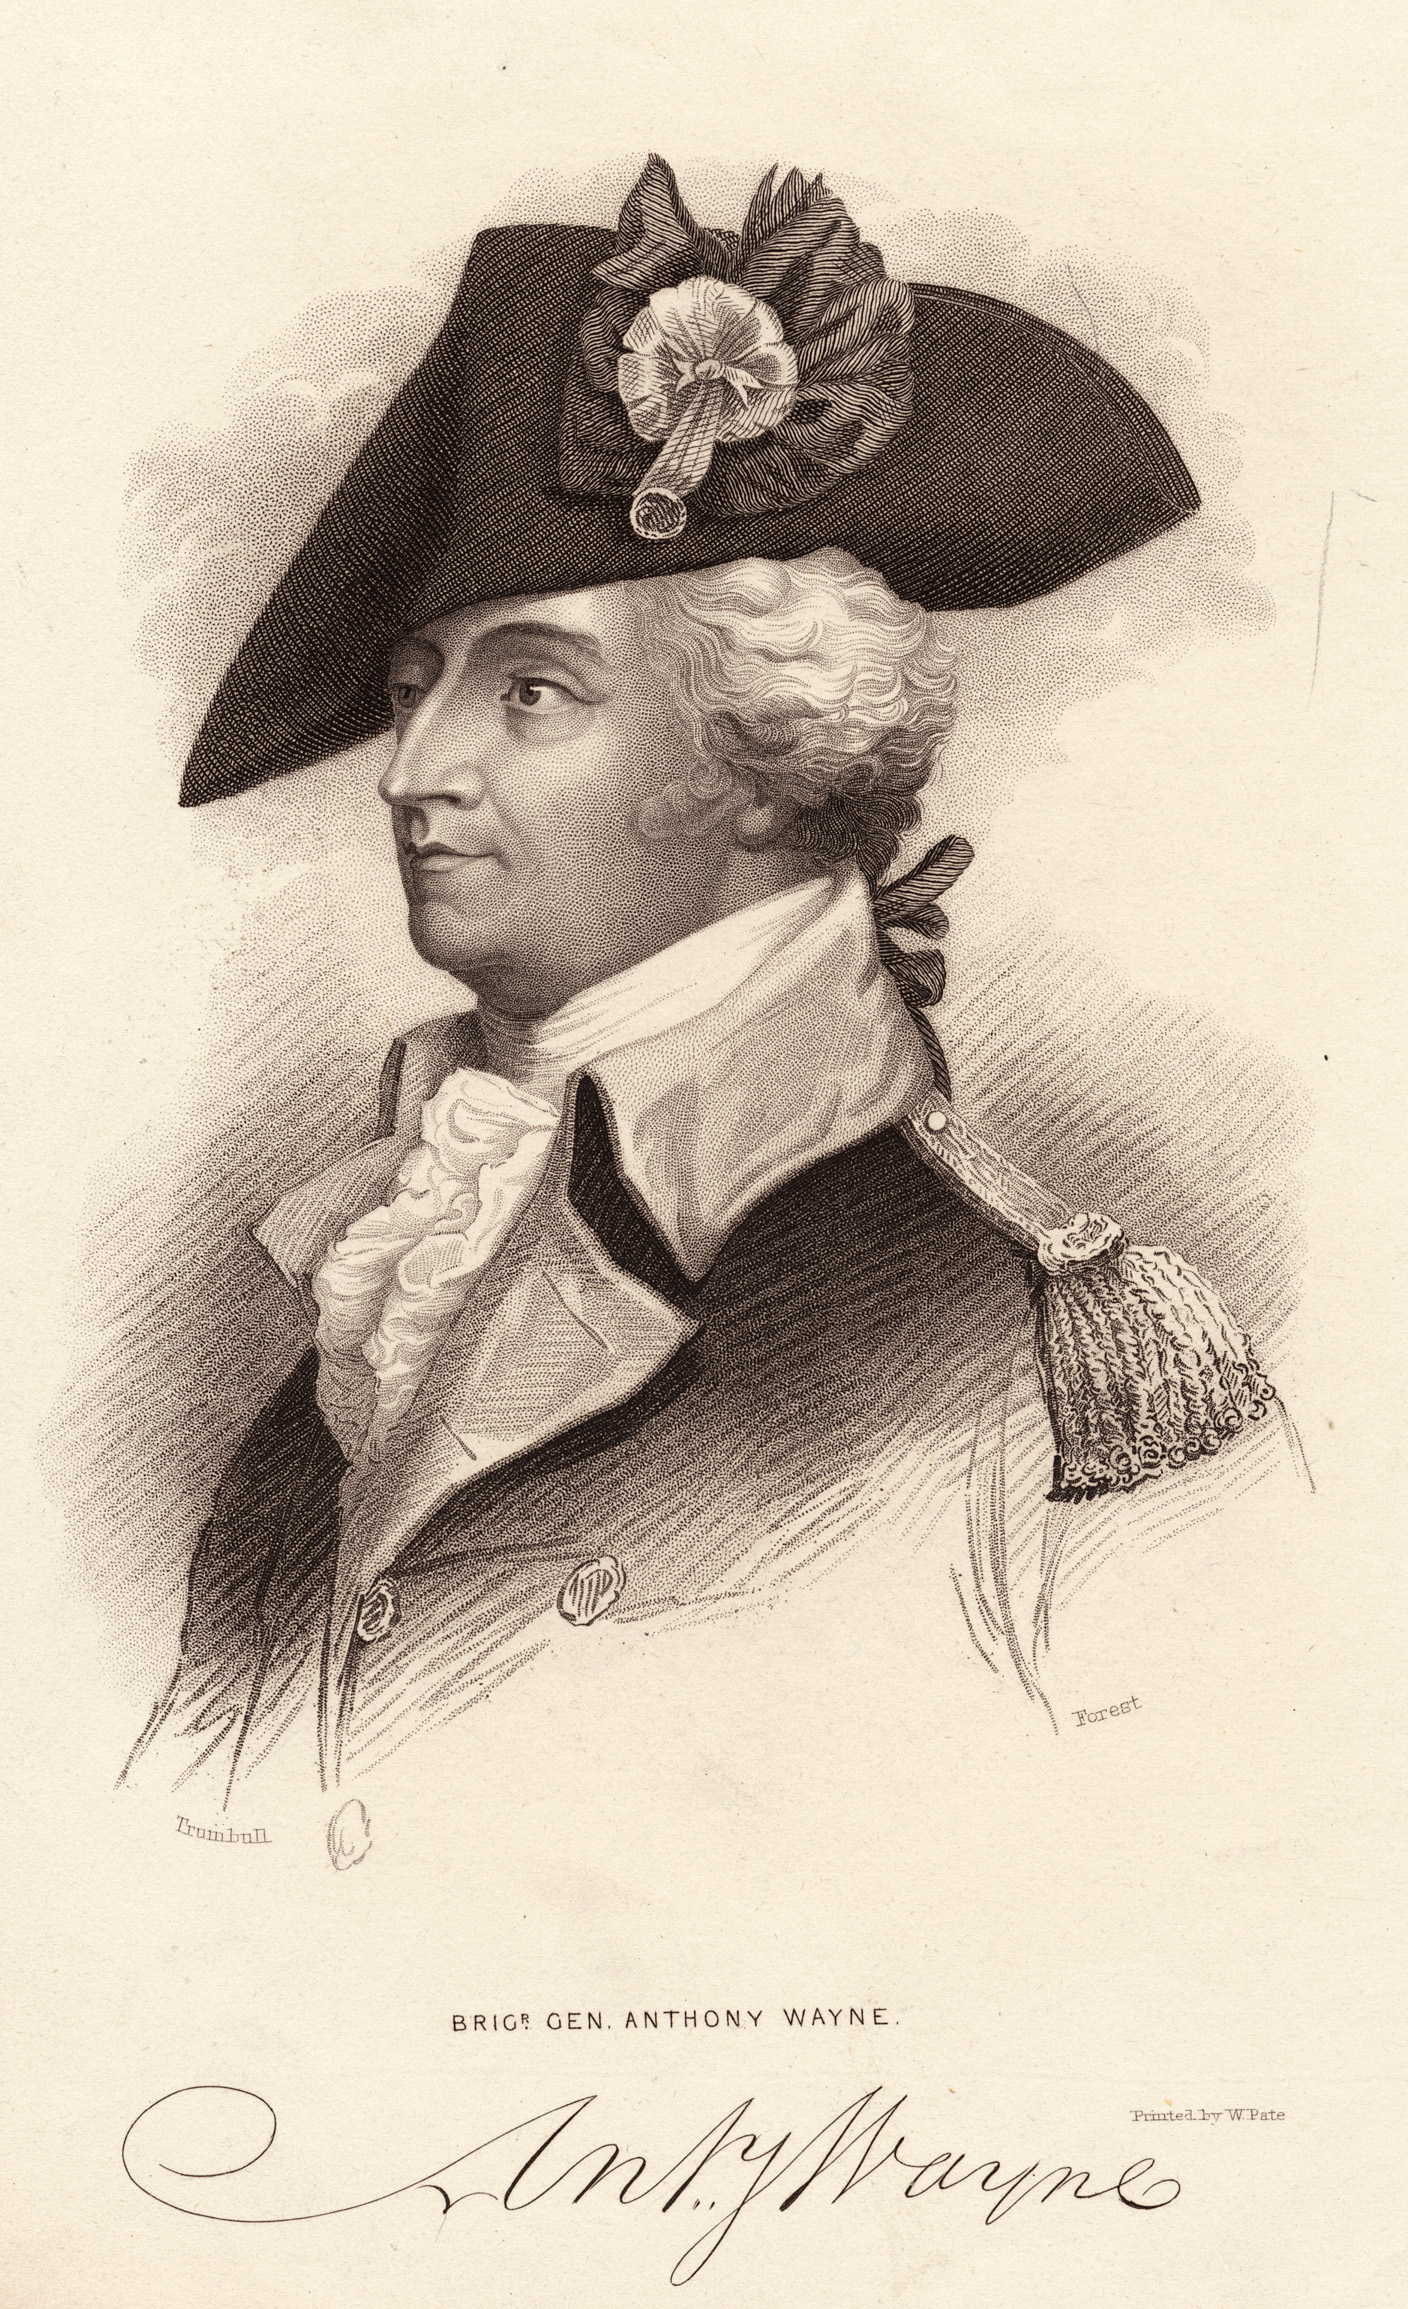 General 'Mad' Anthony Wayne